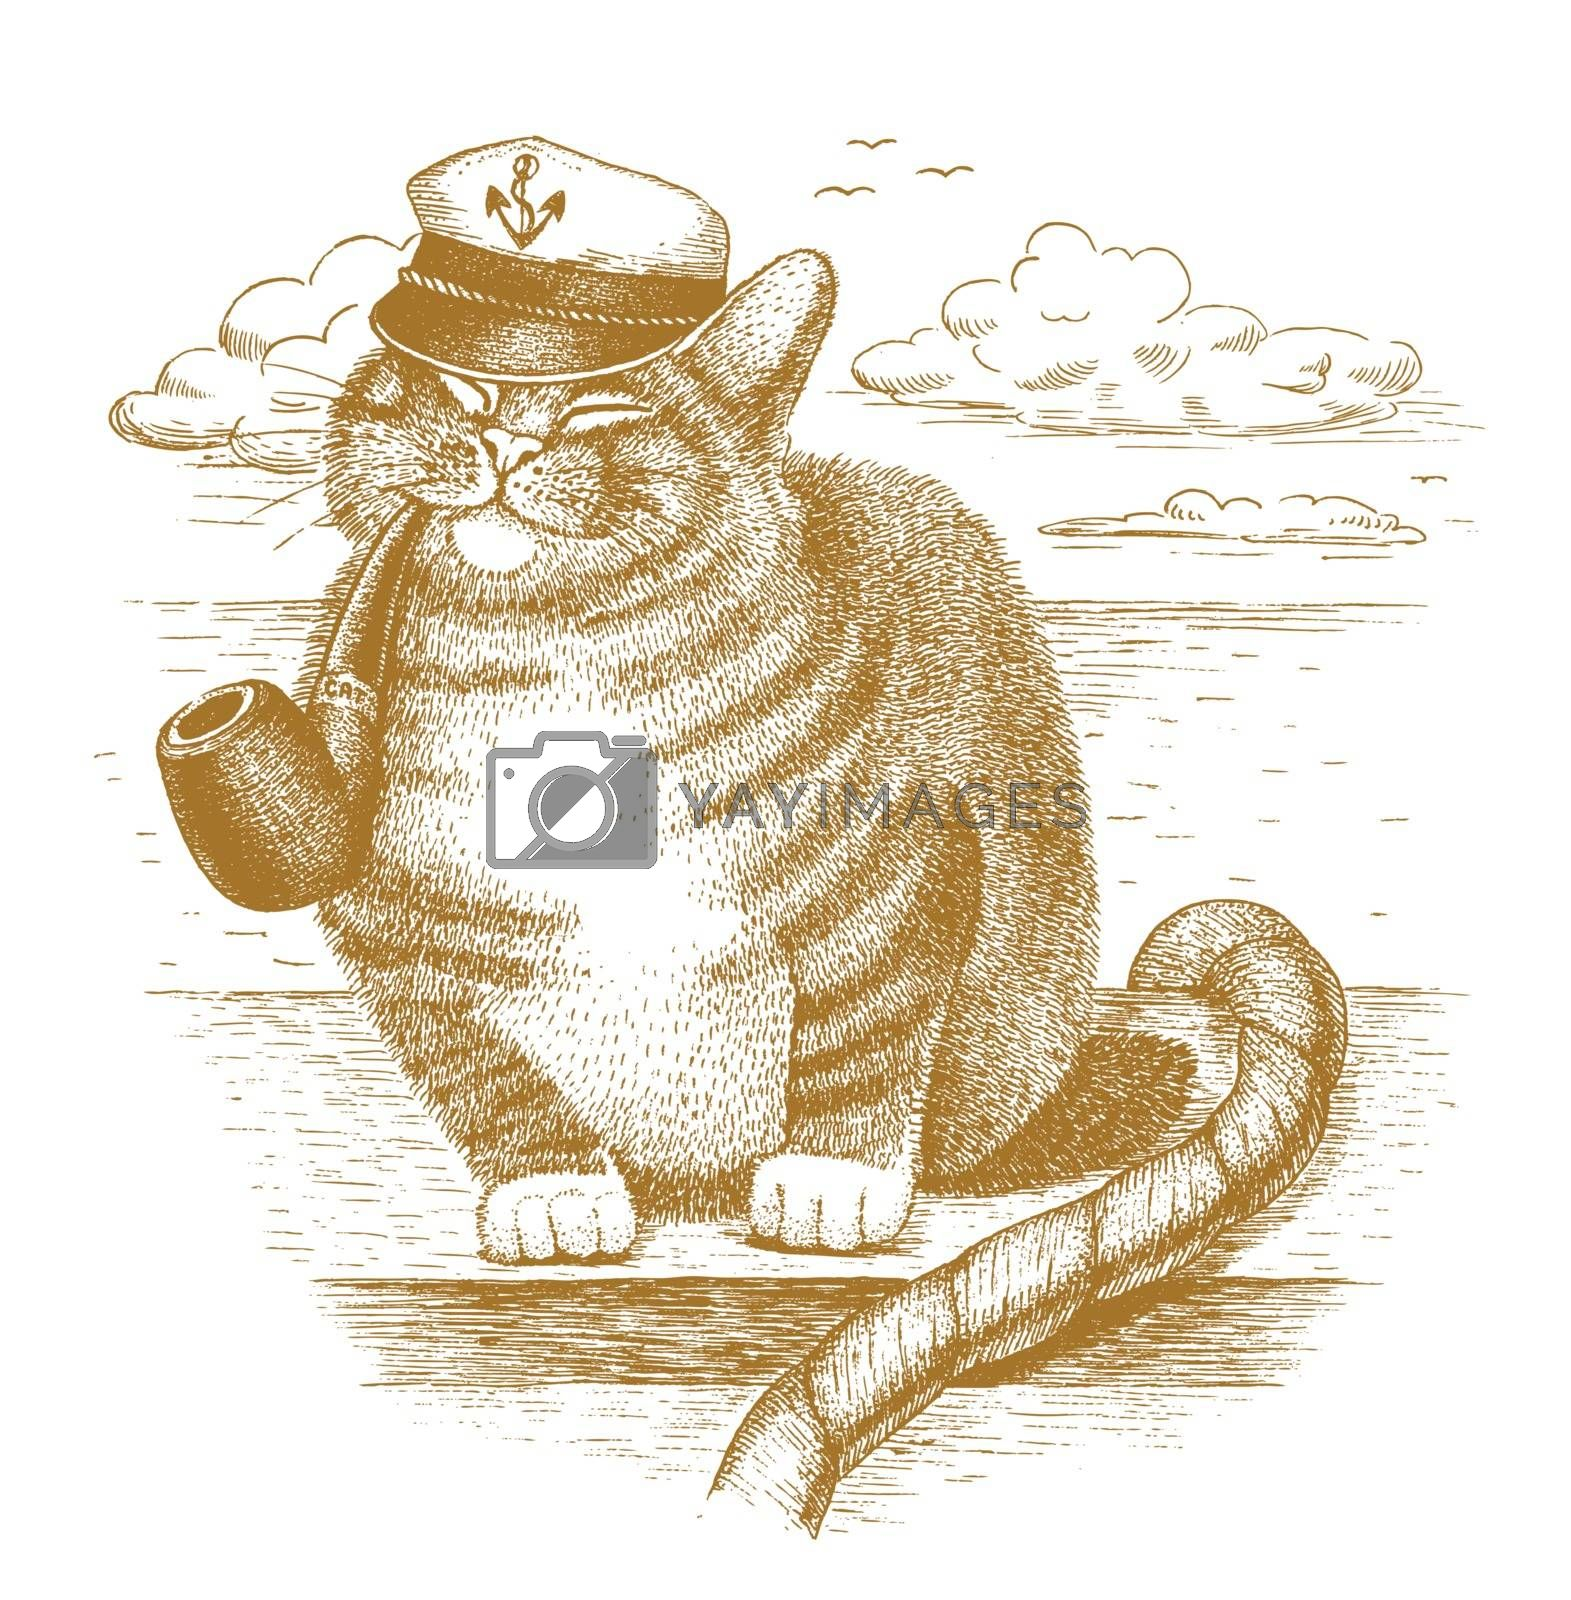 Cat captain drawn by hand